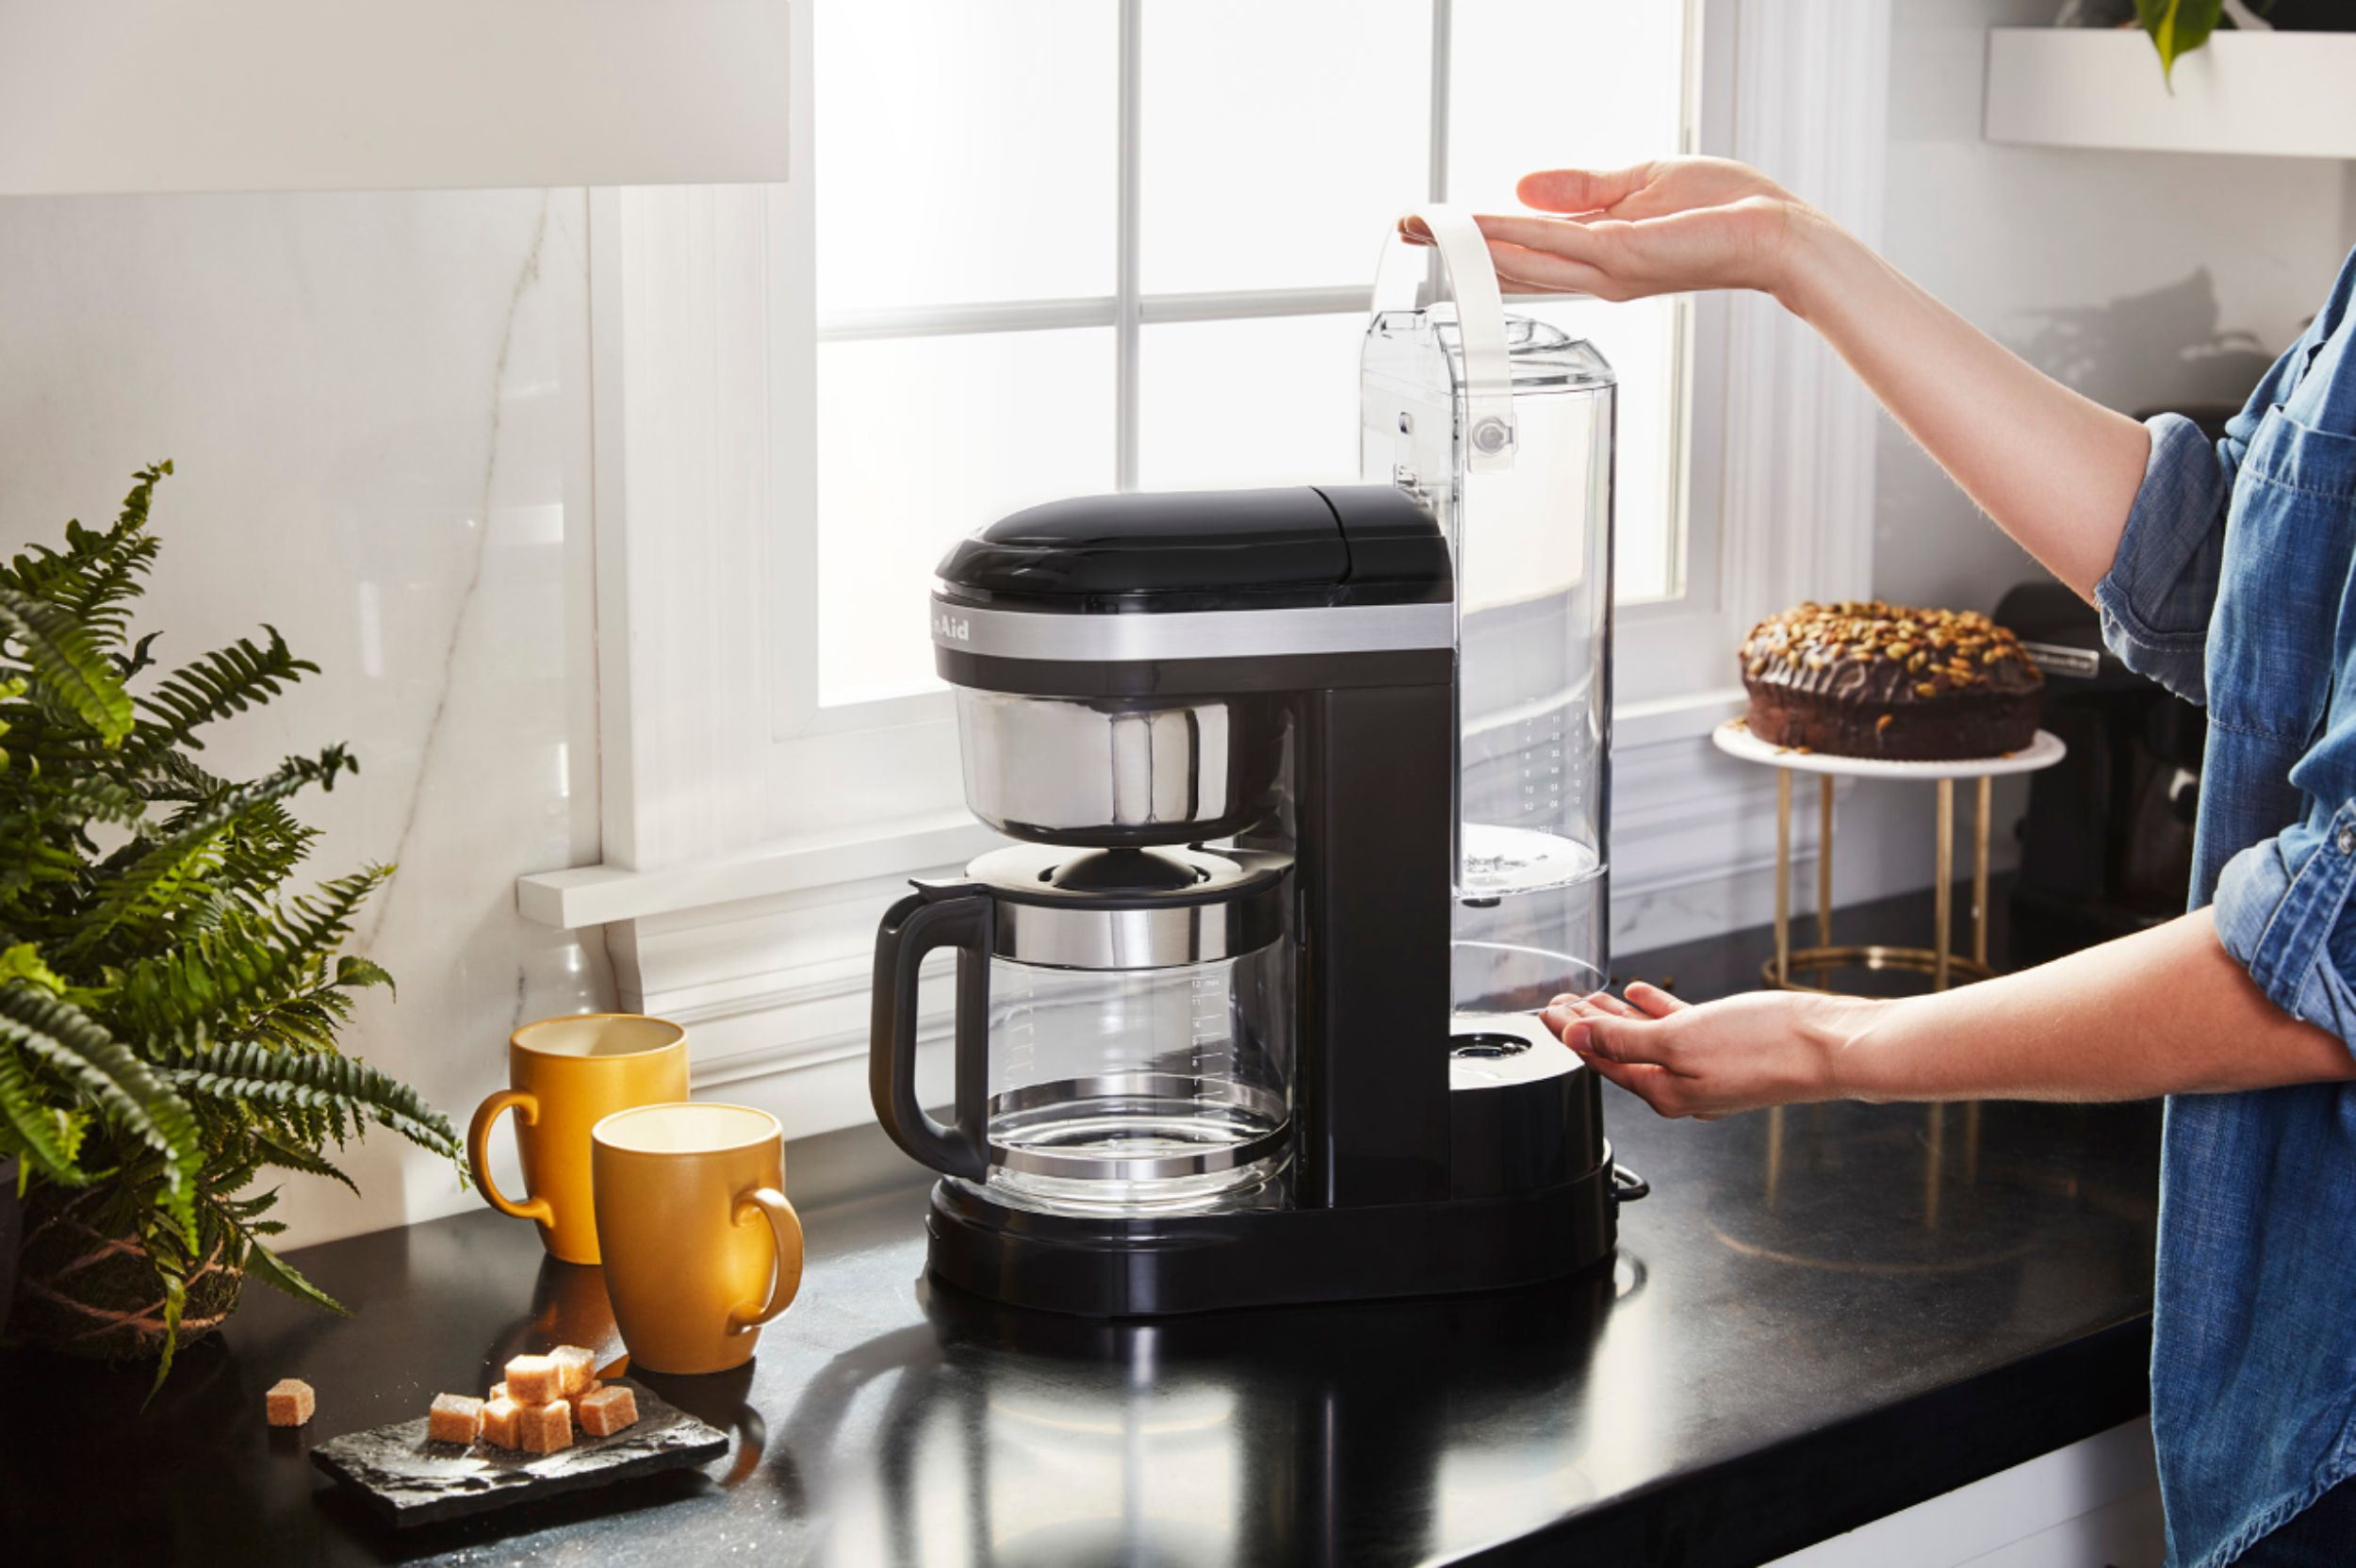 Detailed Analysis On The Commercial Coffee Machines